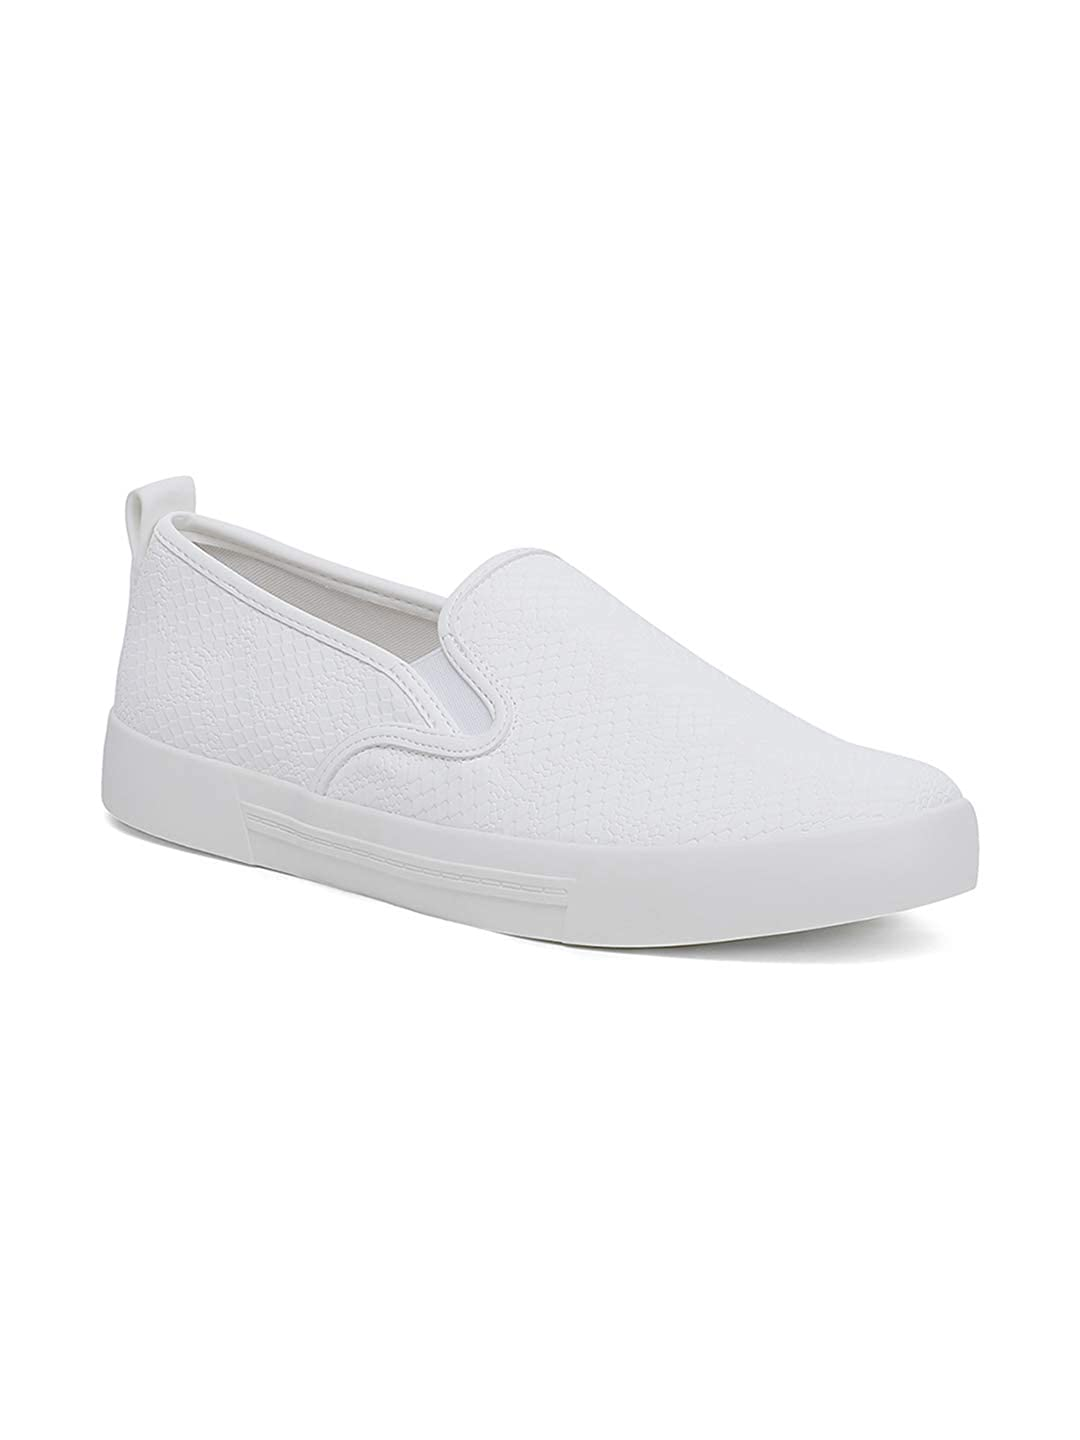 Call It Spring White Slip-on Shoes for